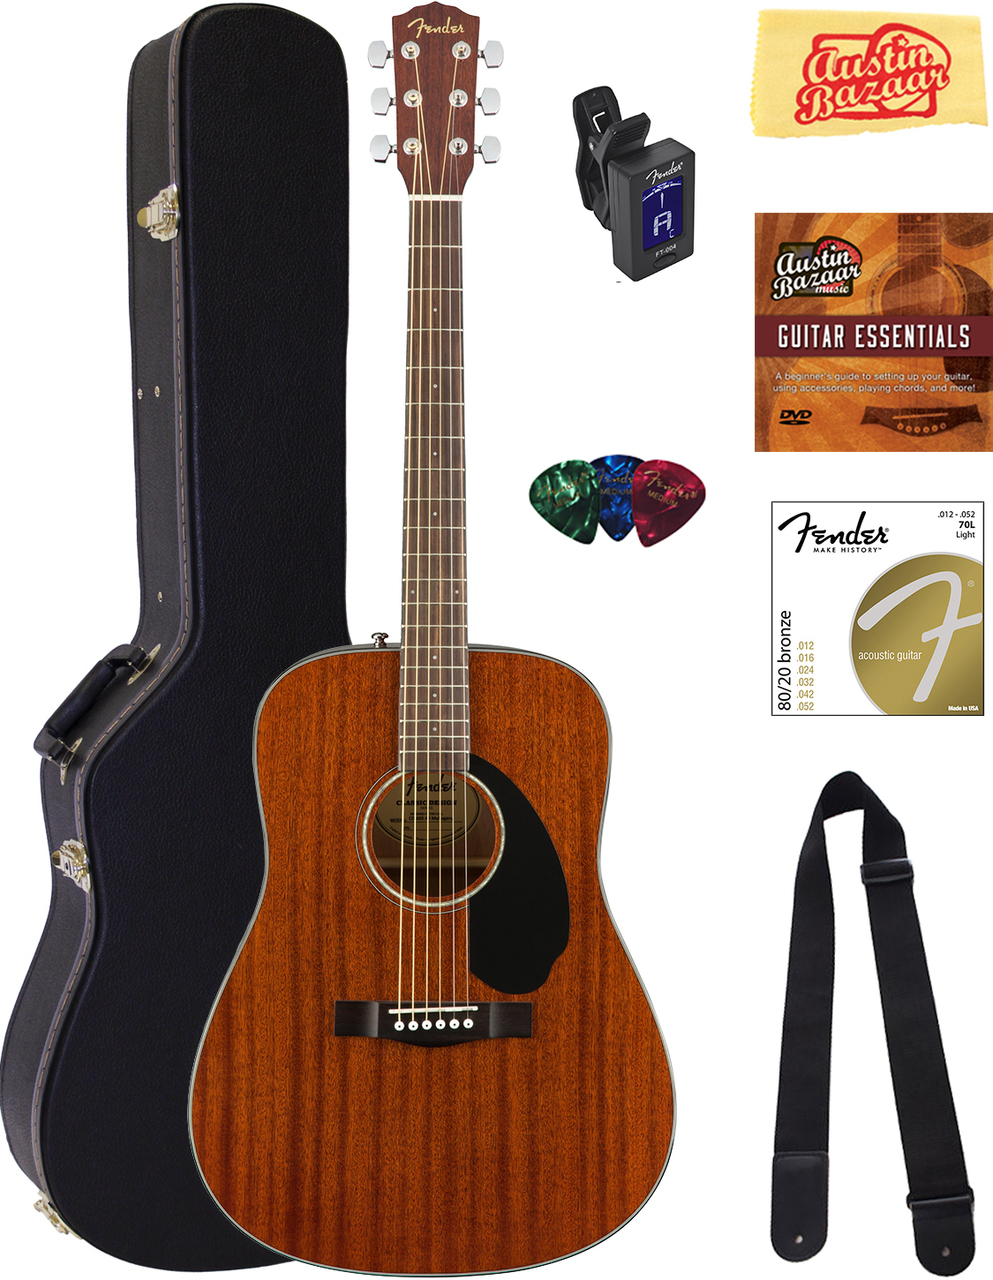 FENDER CD-60S DREADNOUGHT ACOUSTIC GUITAR - ALL MAHOGANY W/ HARD CASE